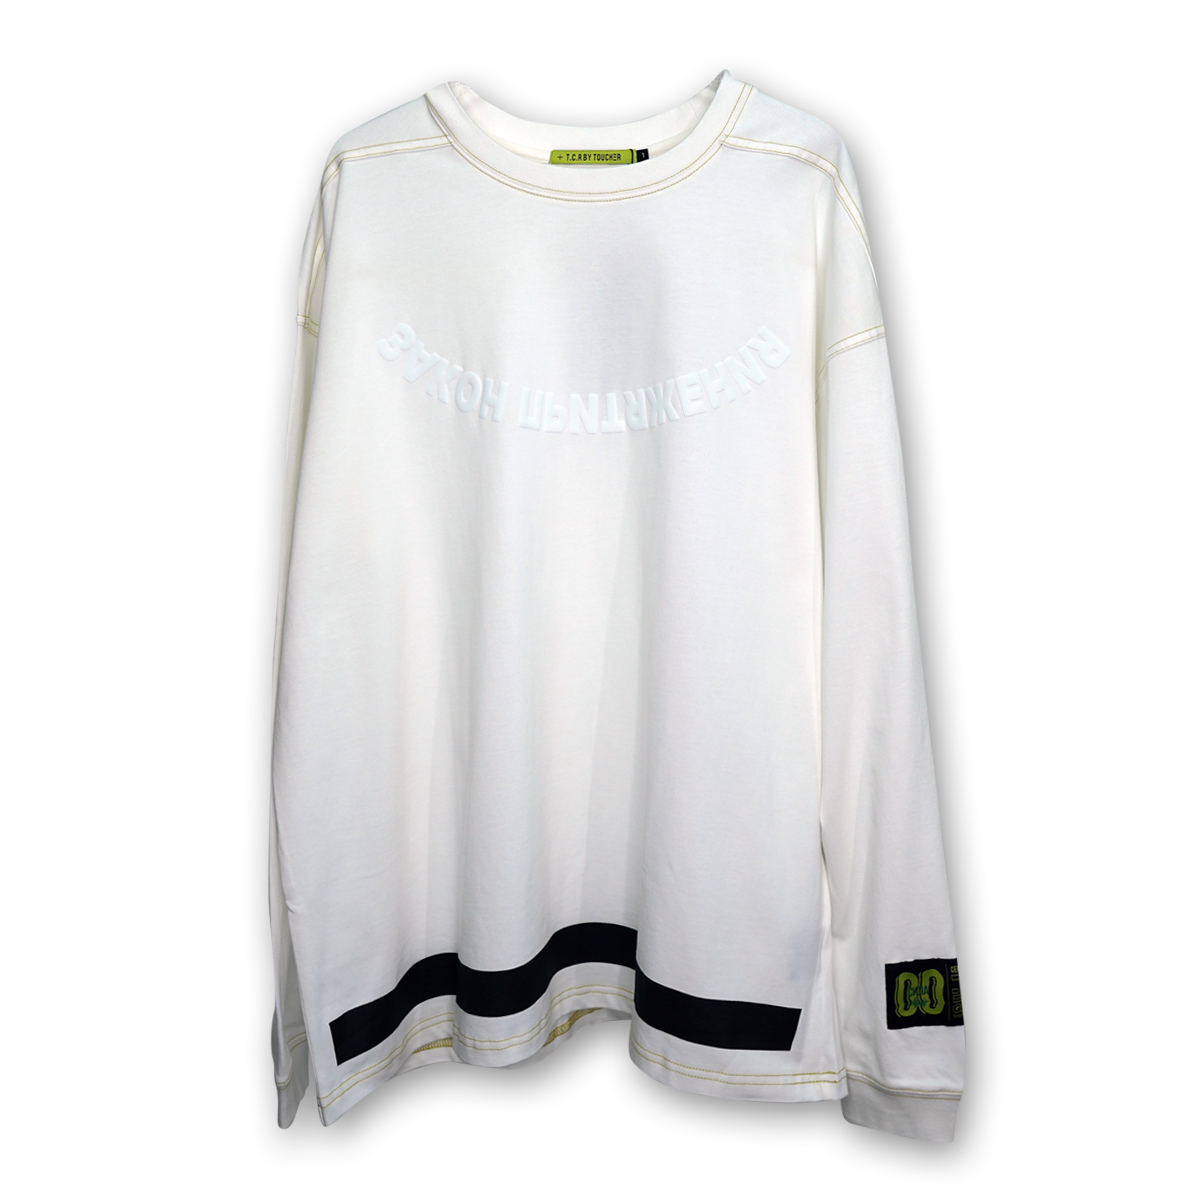 OVERSIZED ATTRACTION L/S TEE - WHITE/YELLOW